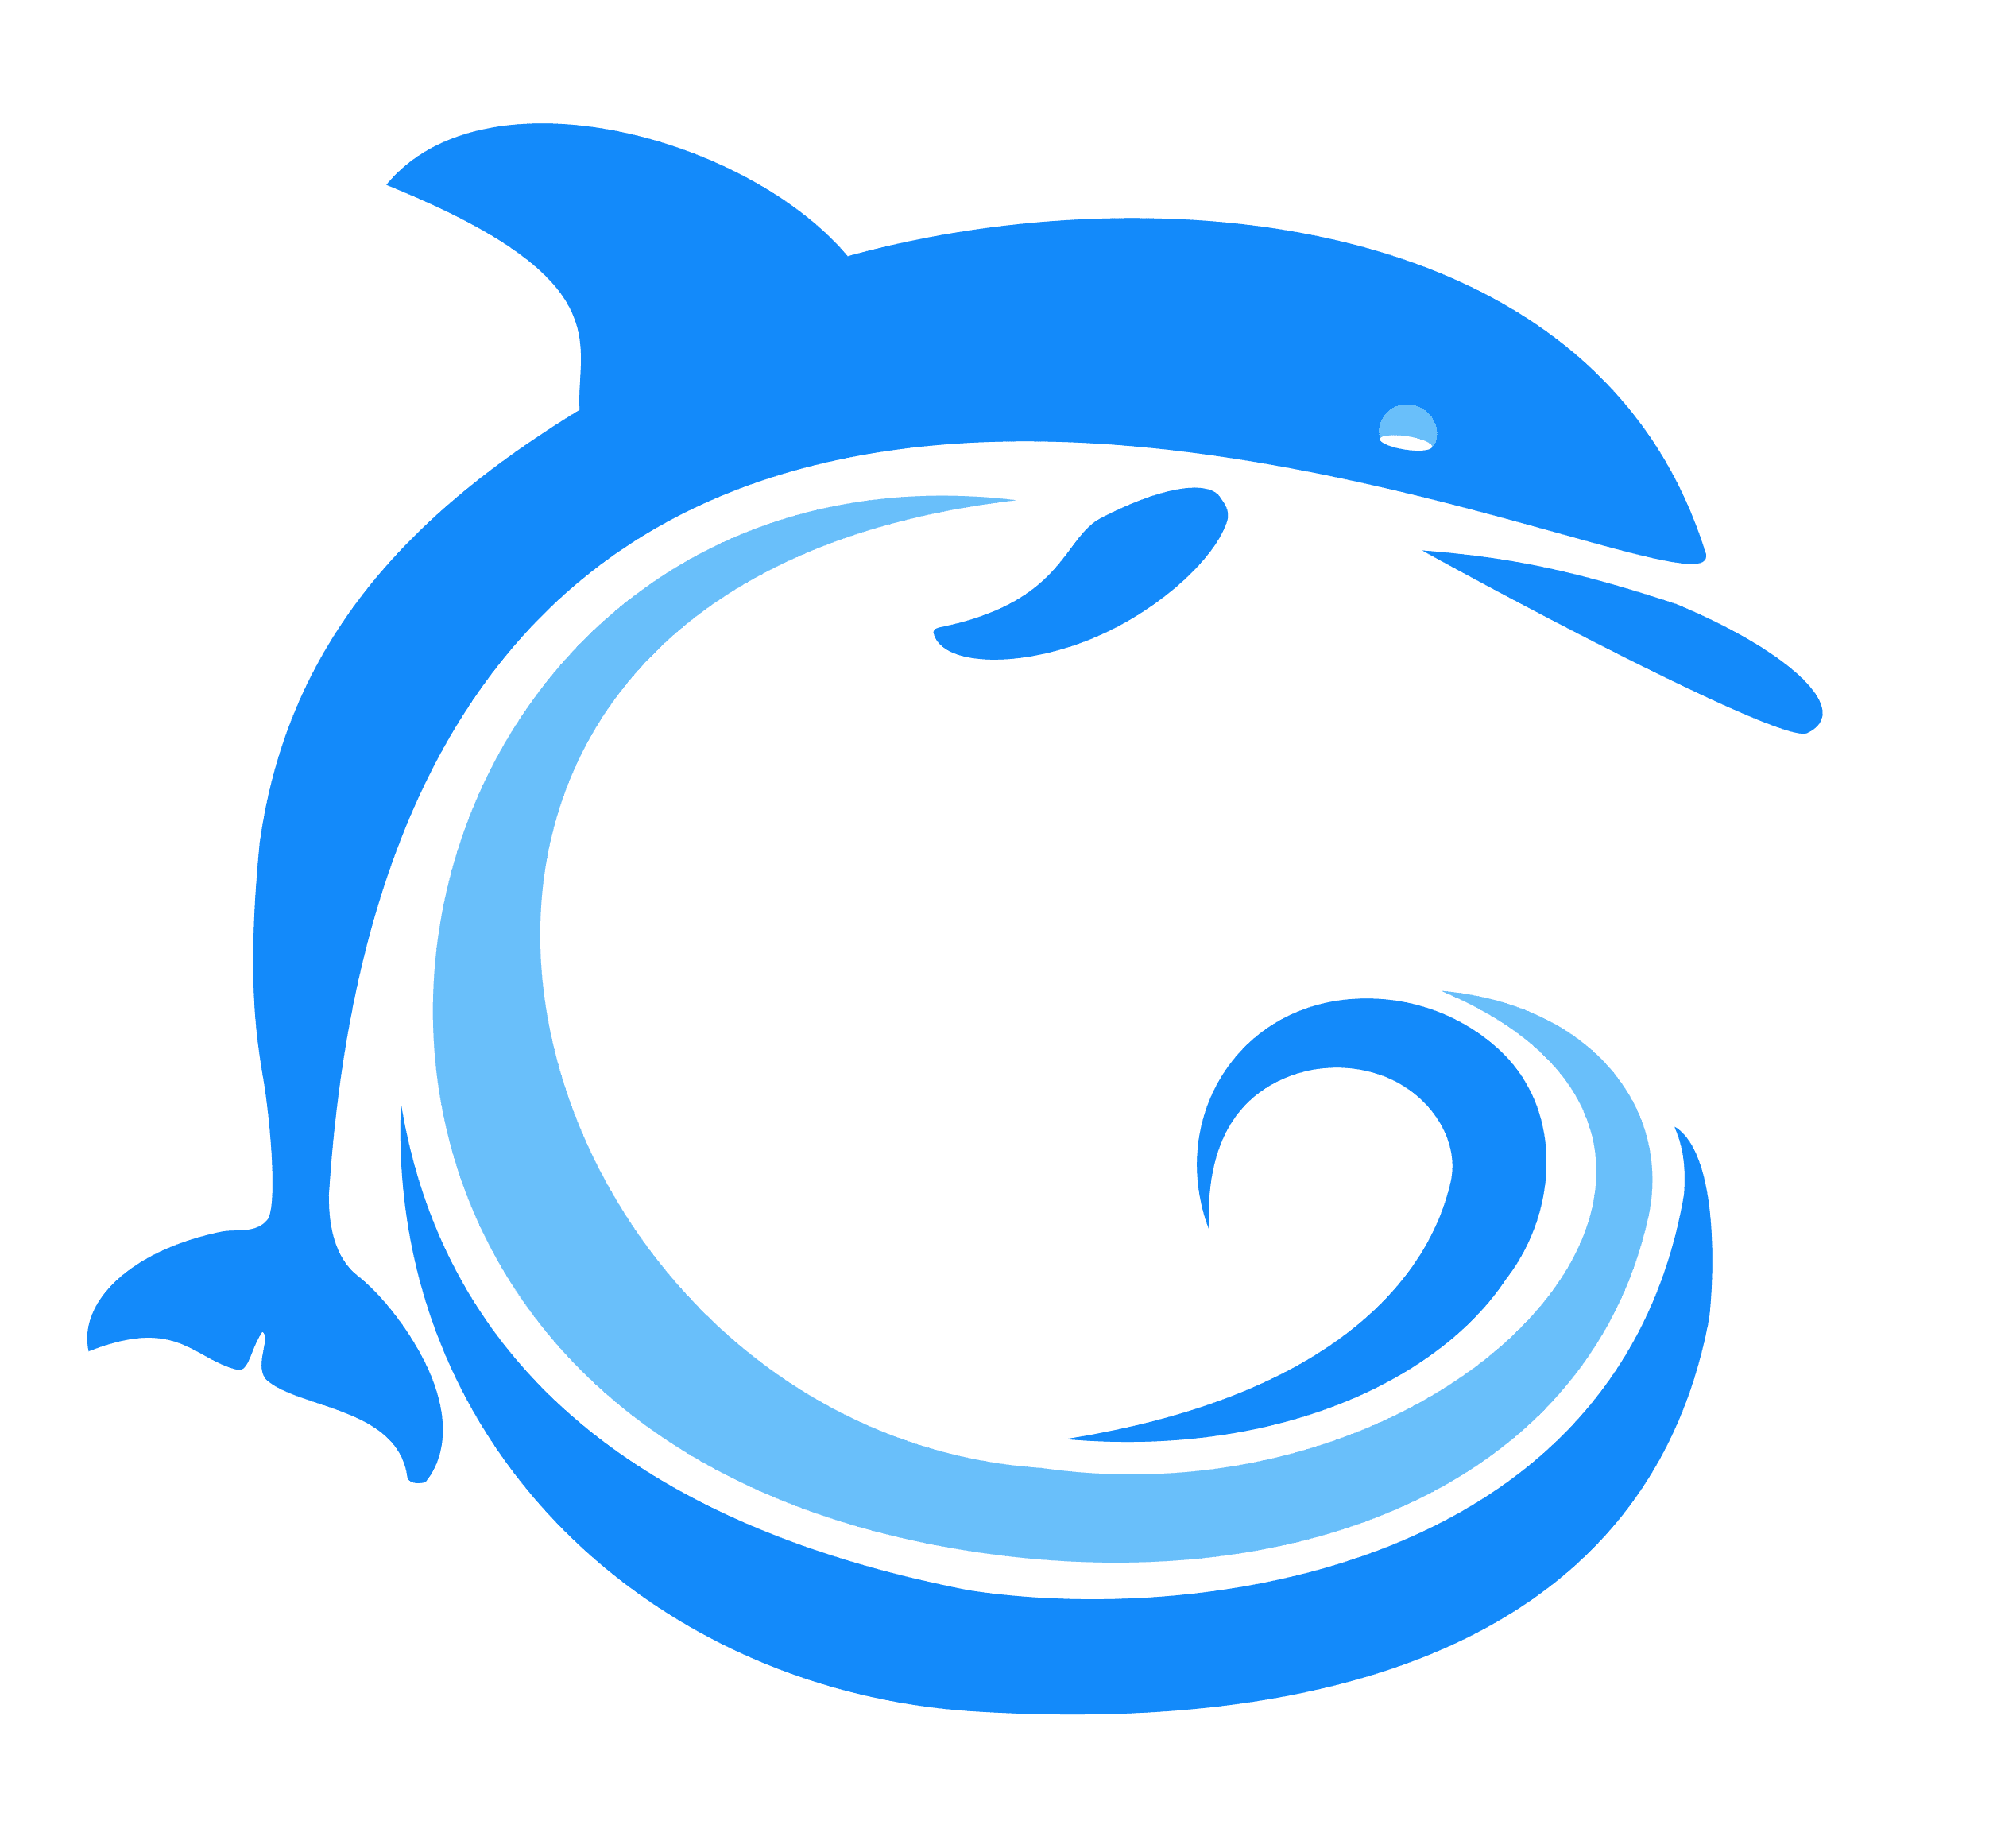 Clever Dolphin Creative Design